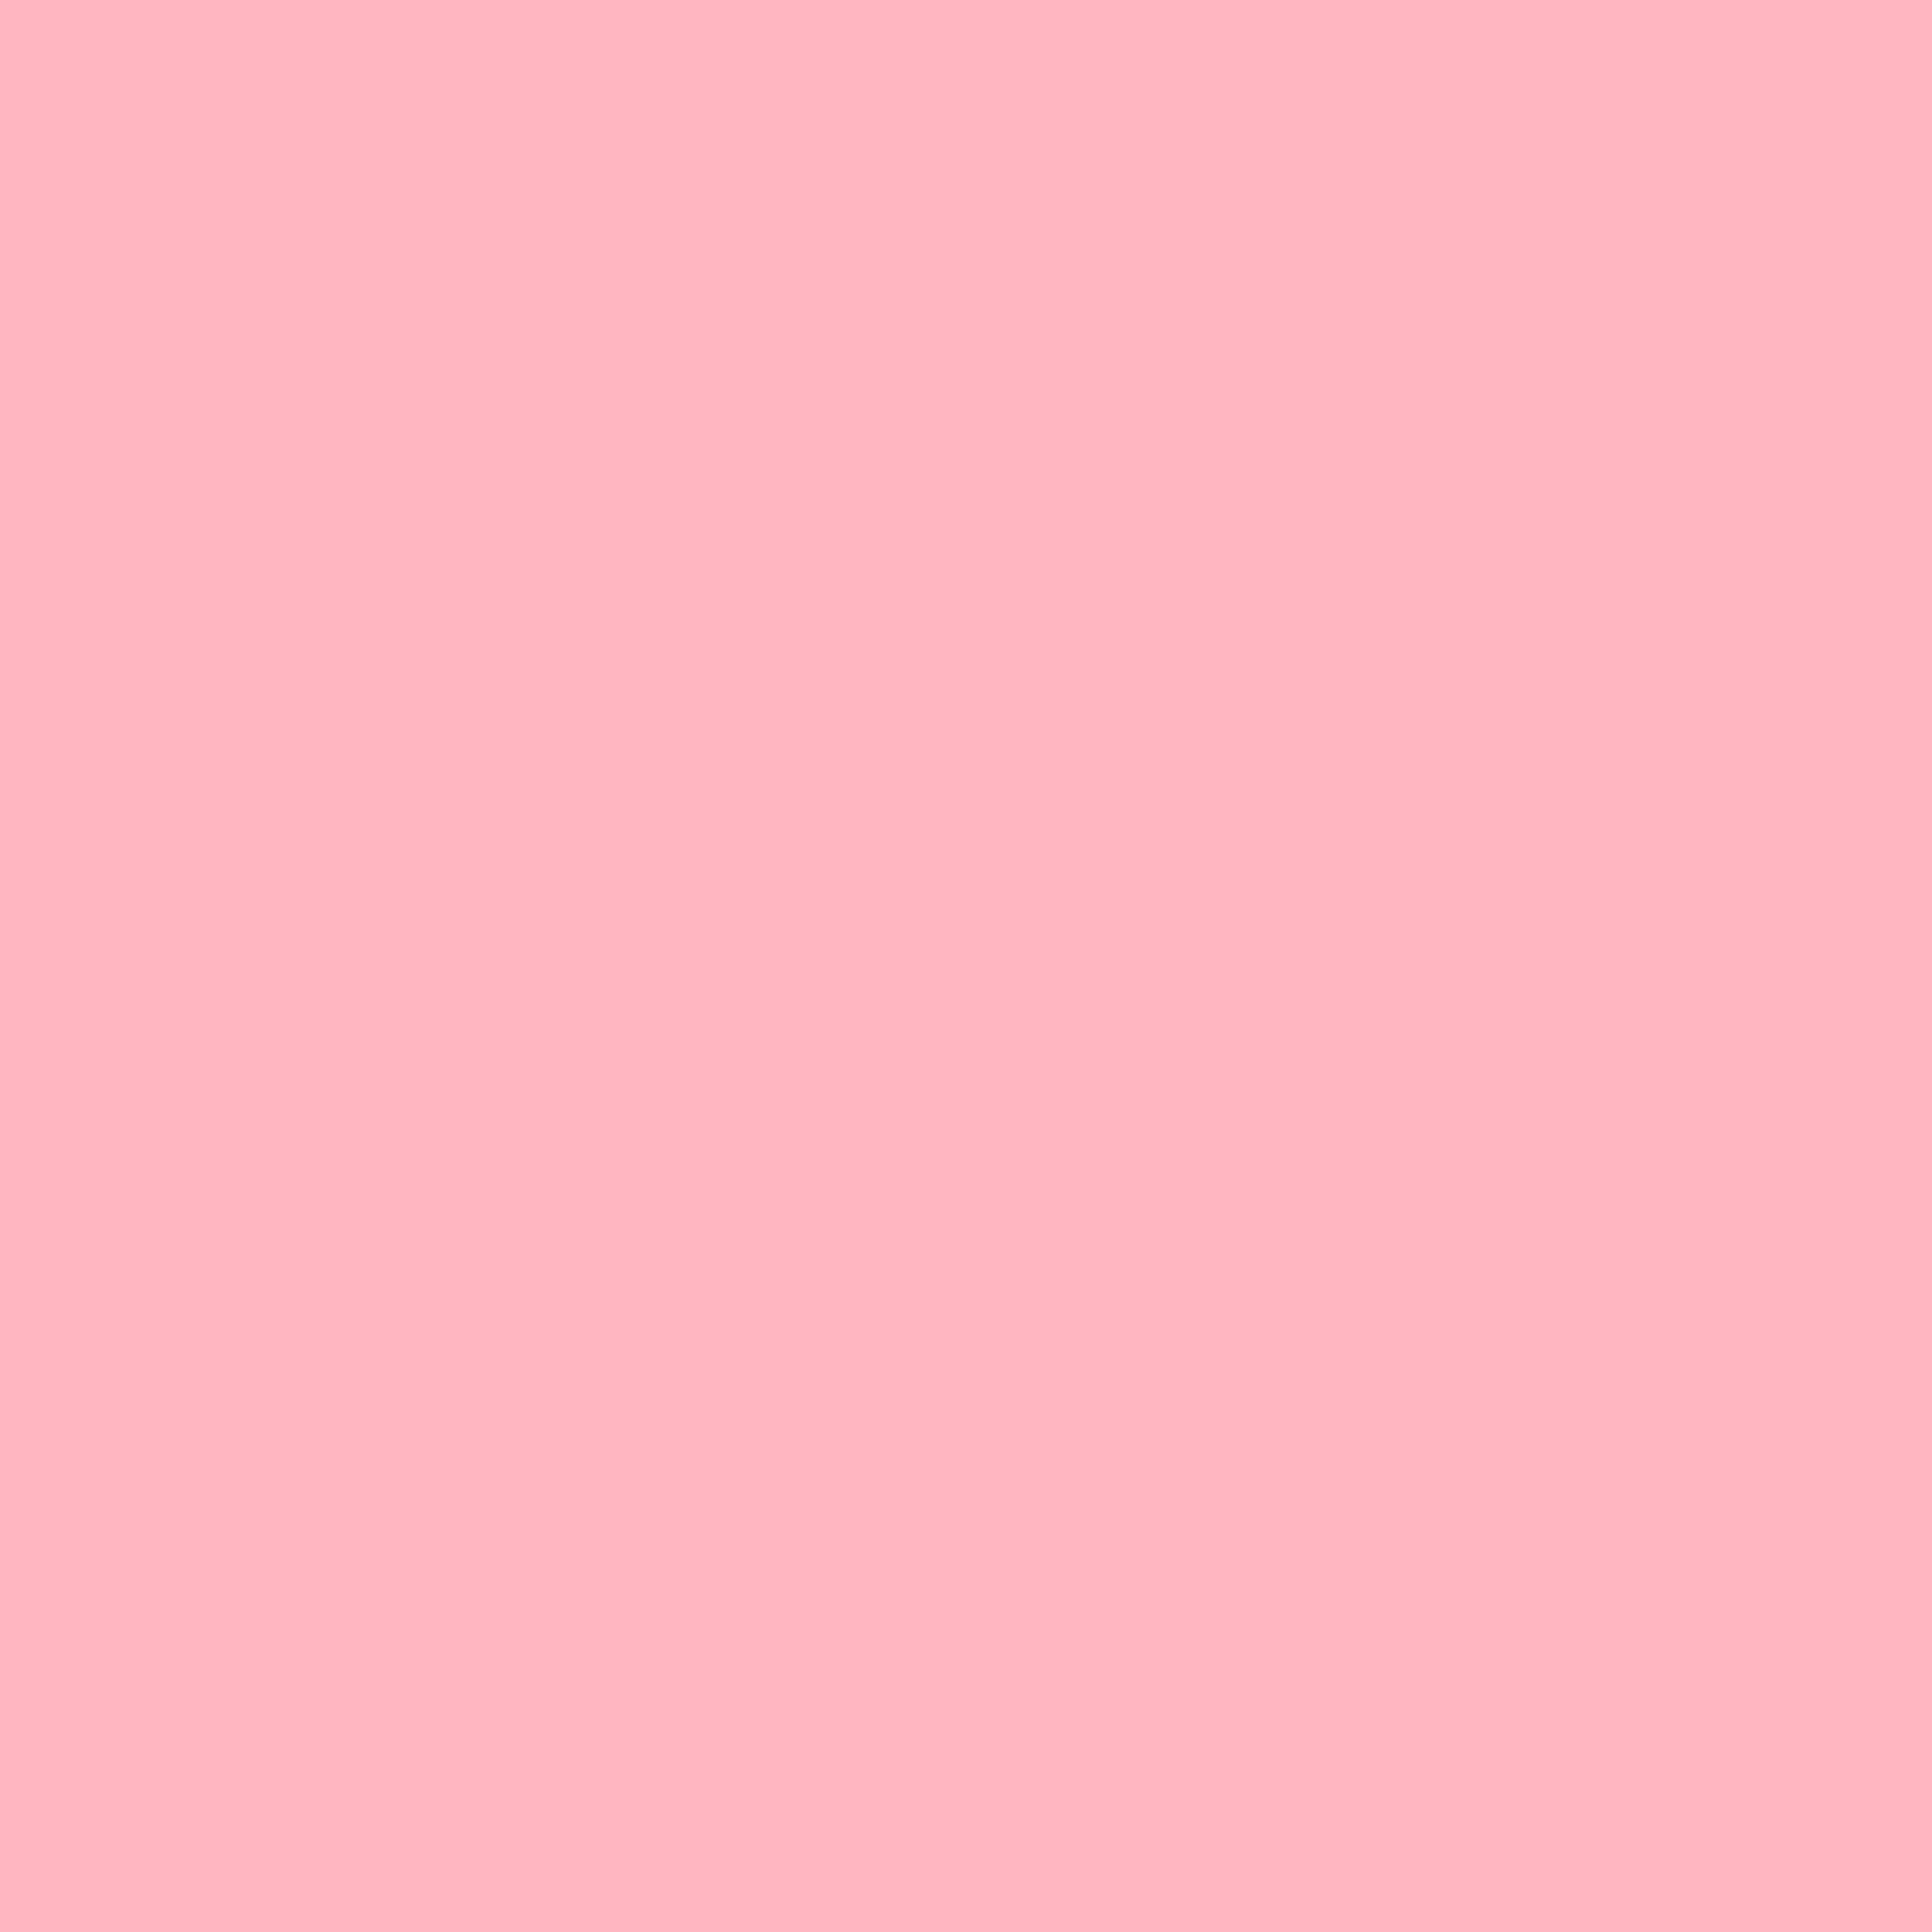 Solid Light Pink Background Tumblr Light pink solid color 2048x2048